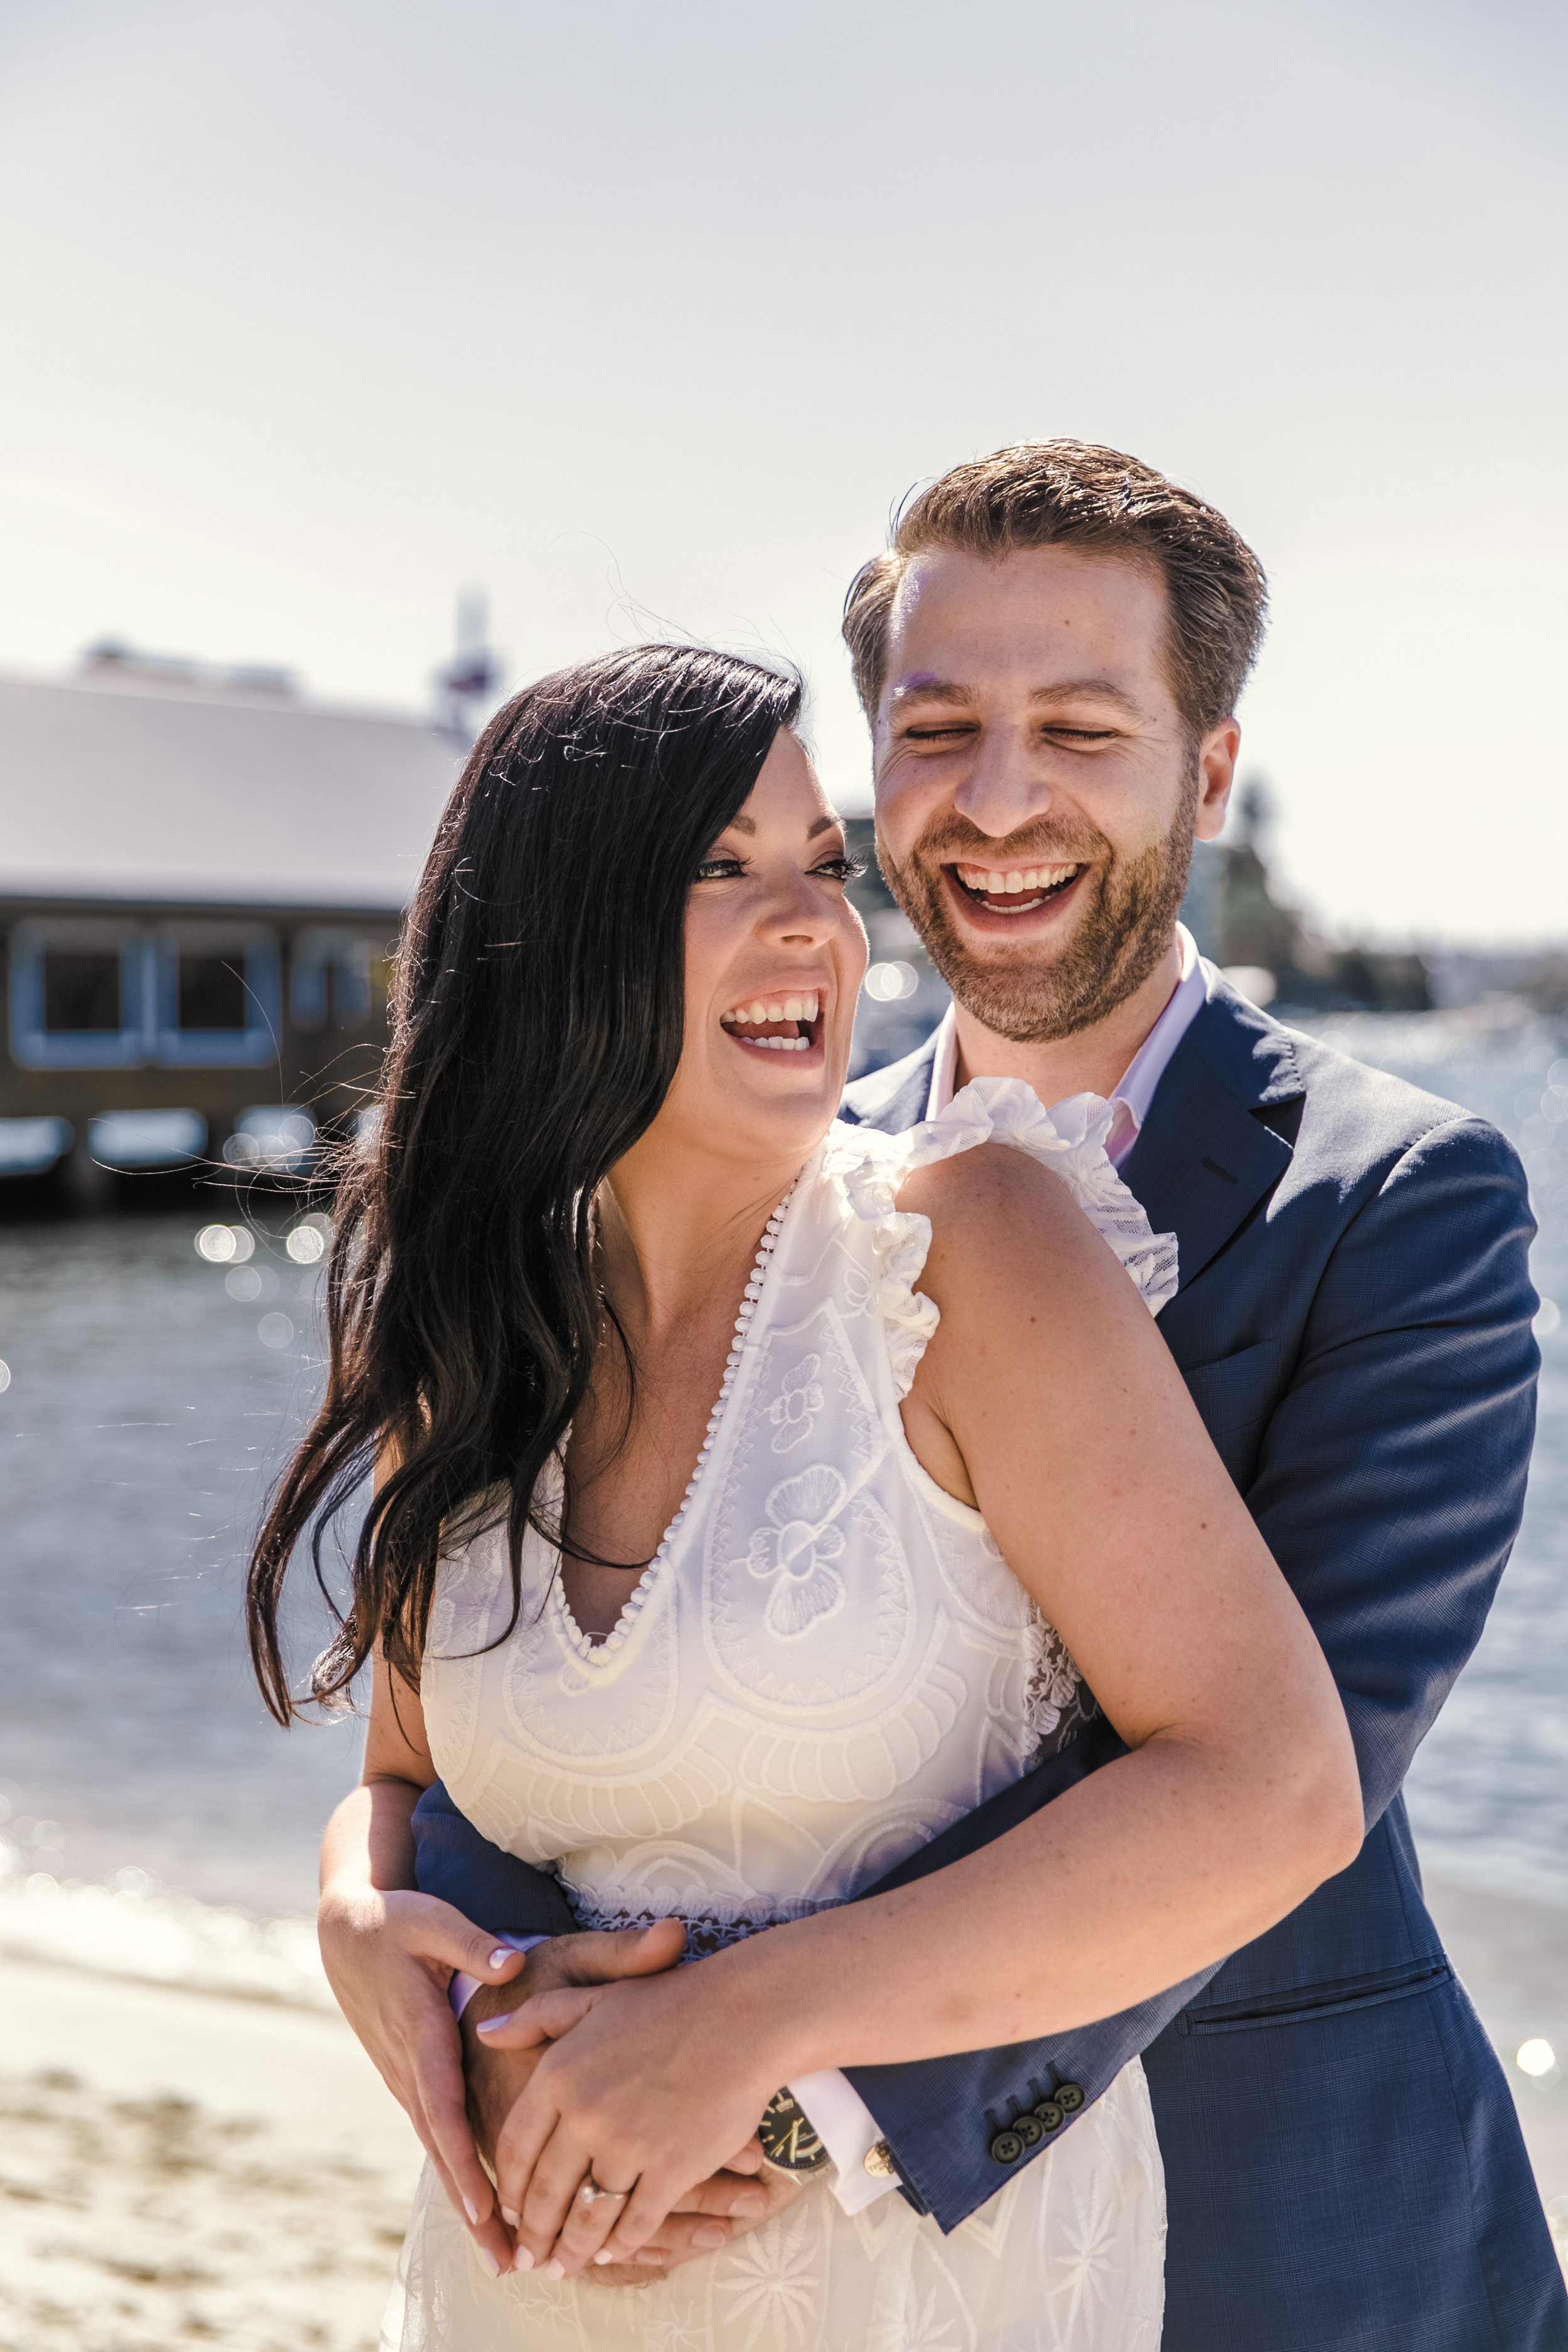 Photographed With Love - candid engagement photography sydney